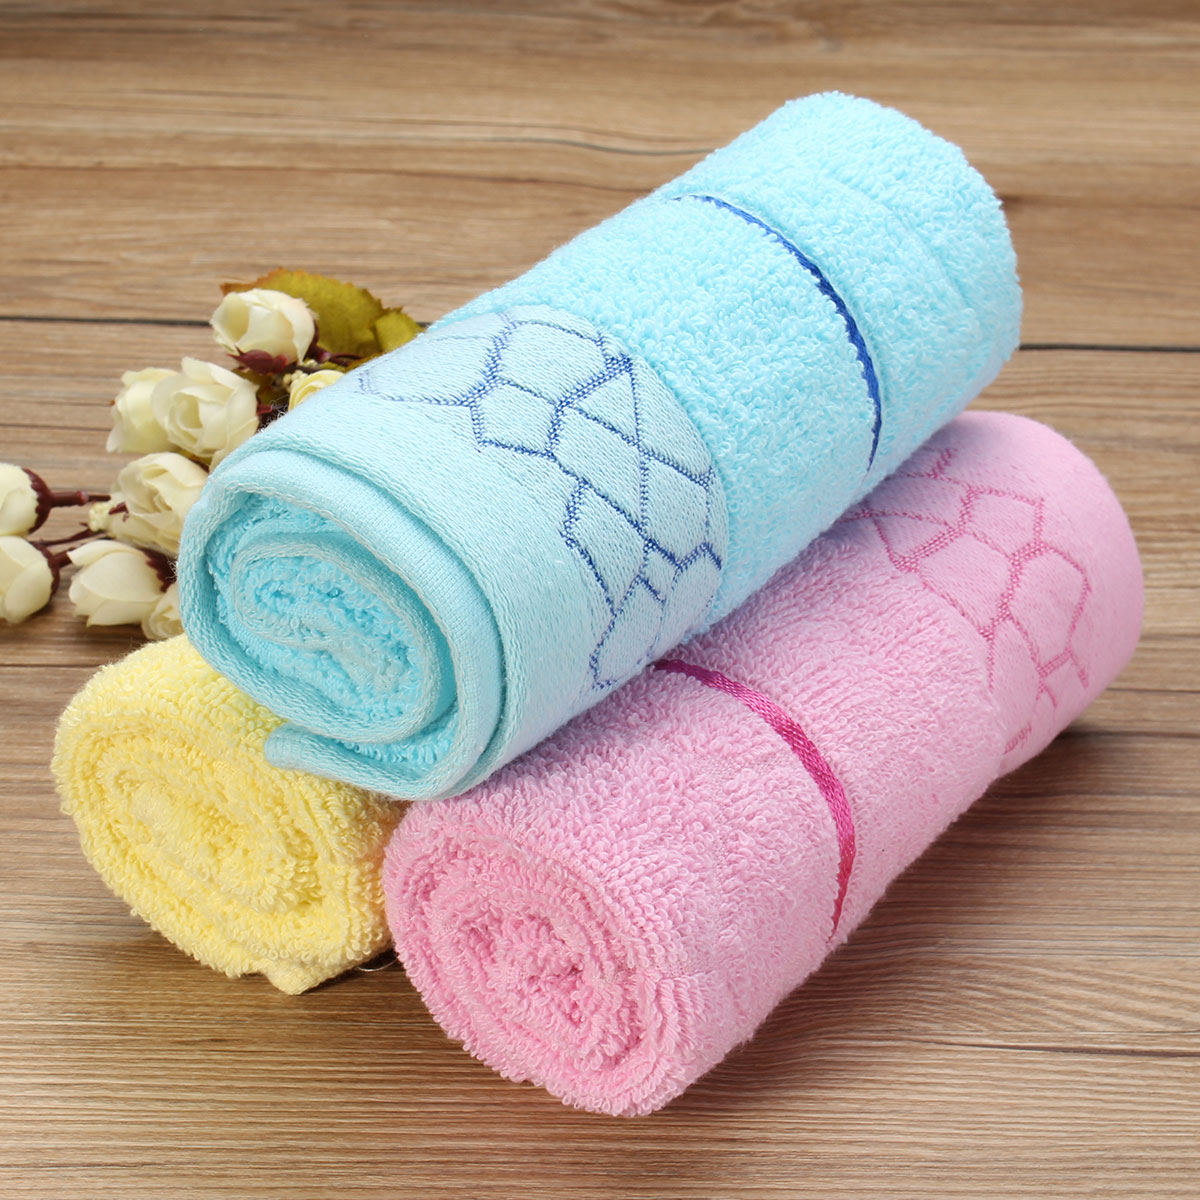 73x33cm Absorbent Cotton Jacquard Weave Towel For Home Camping Travelling Yoga